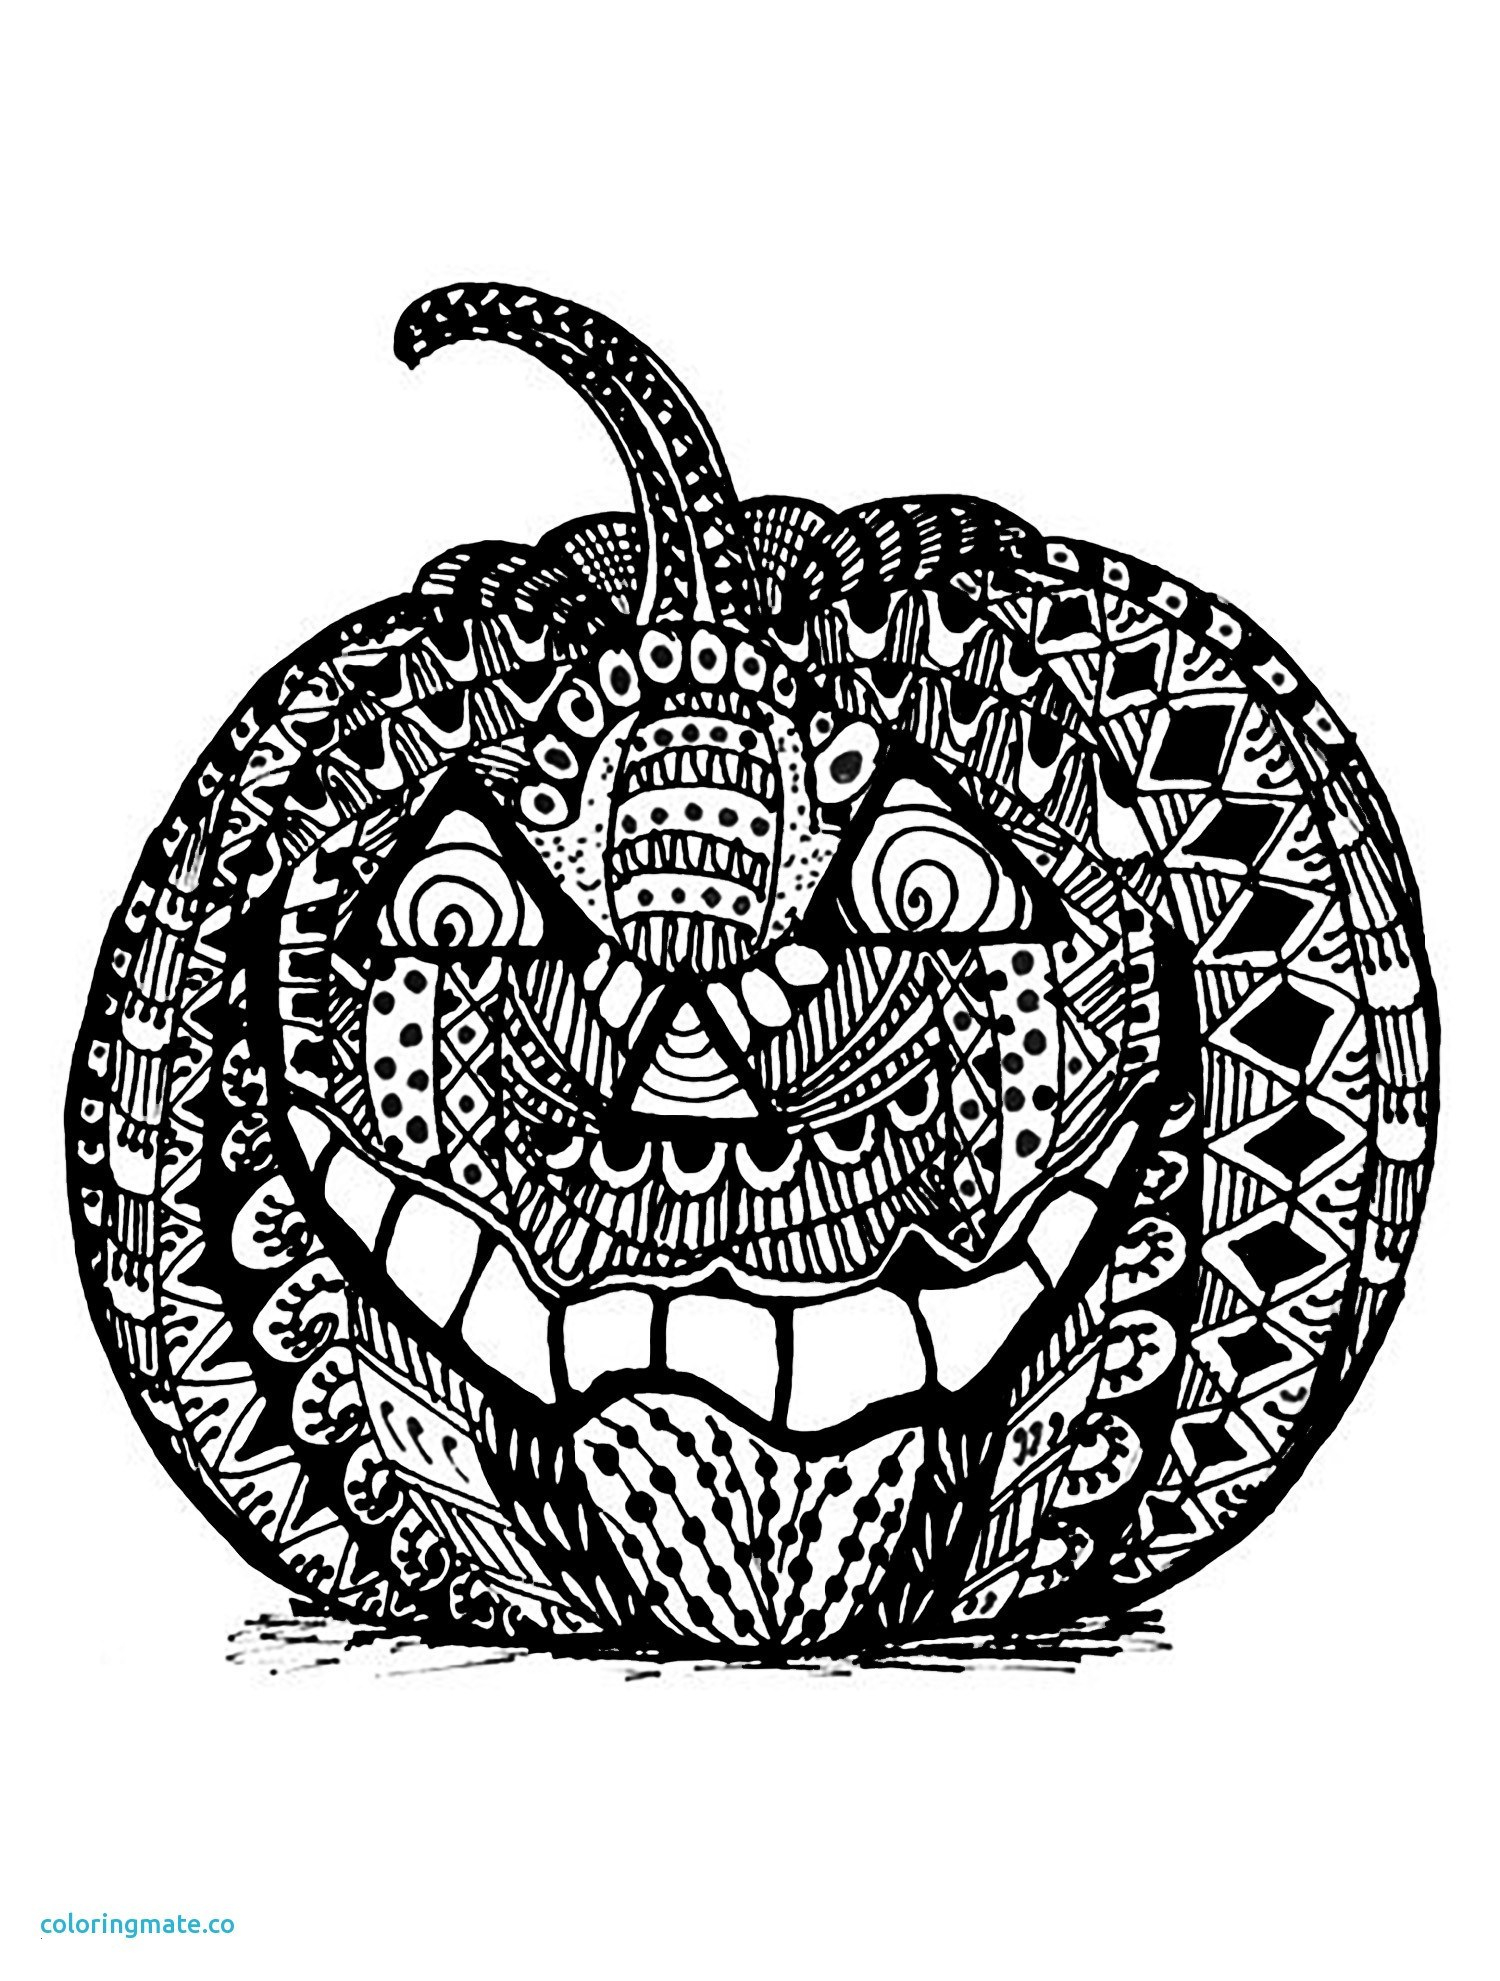 halloween mandala coloring pages halloween mandala coloring pages coloring pages mandala halloween coloring pages